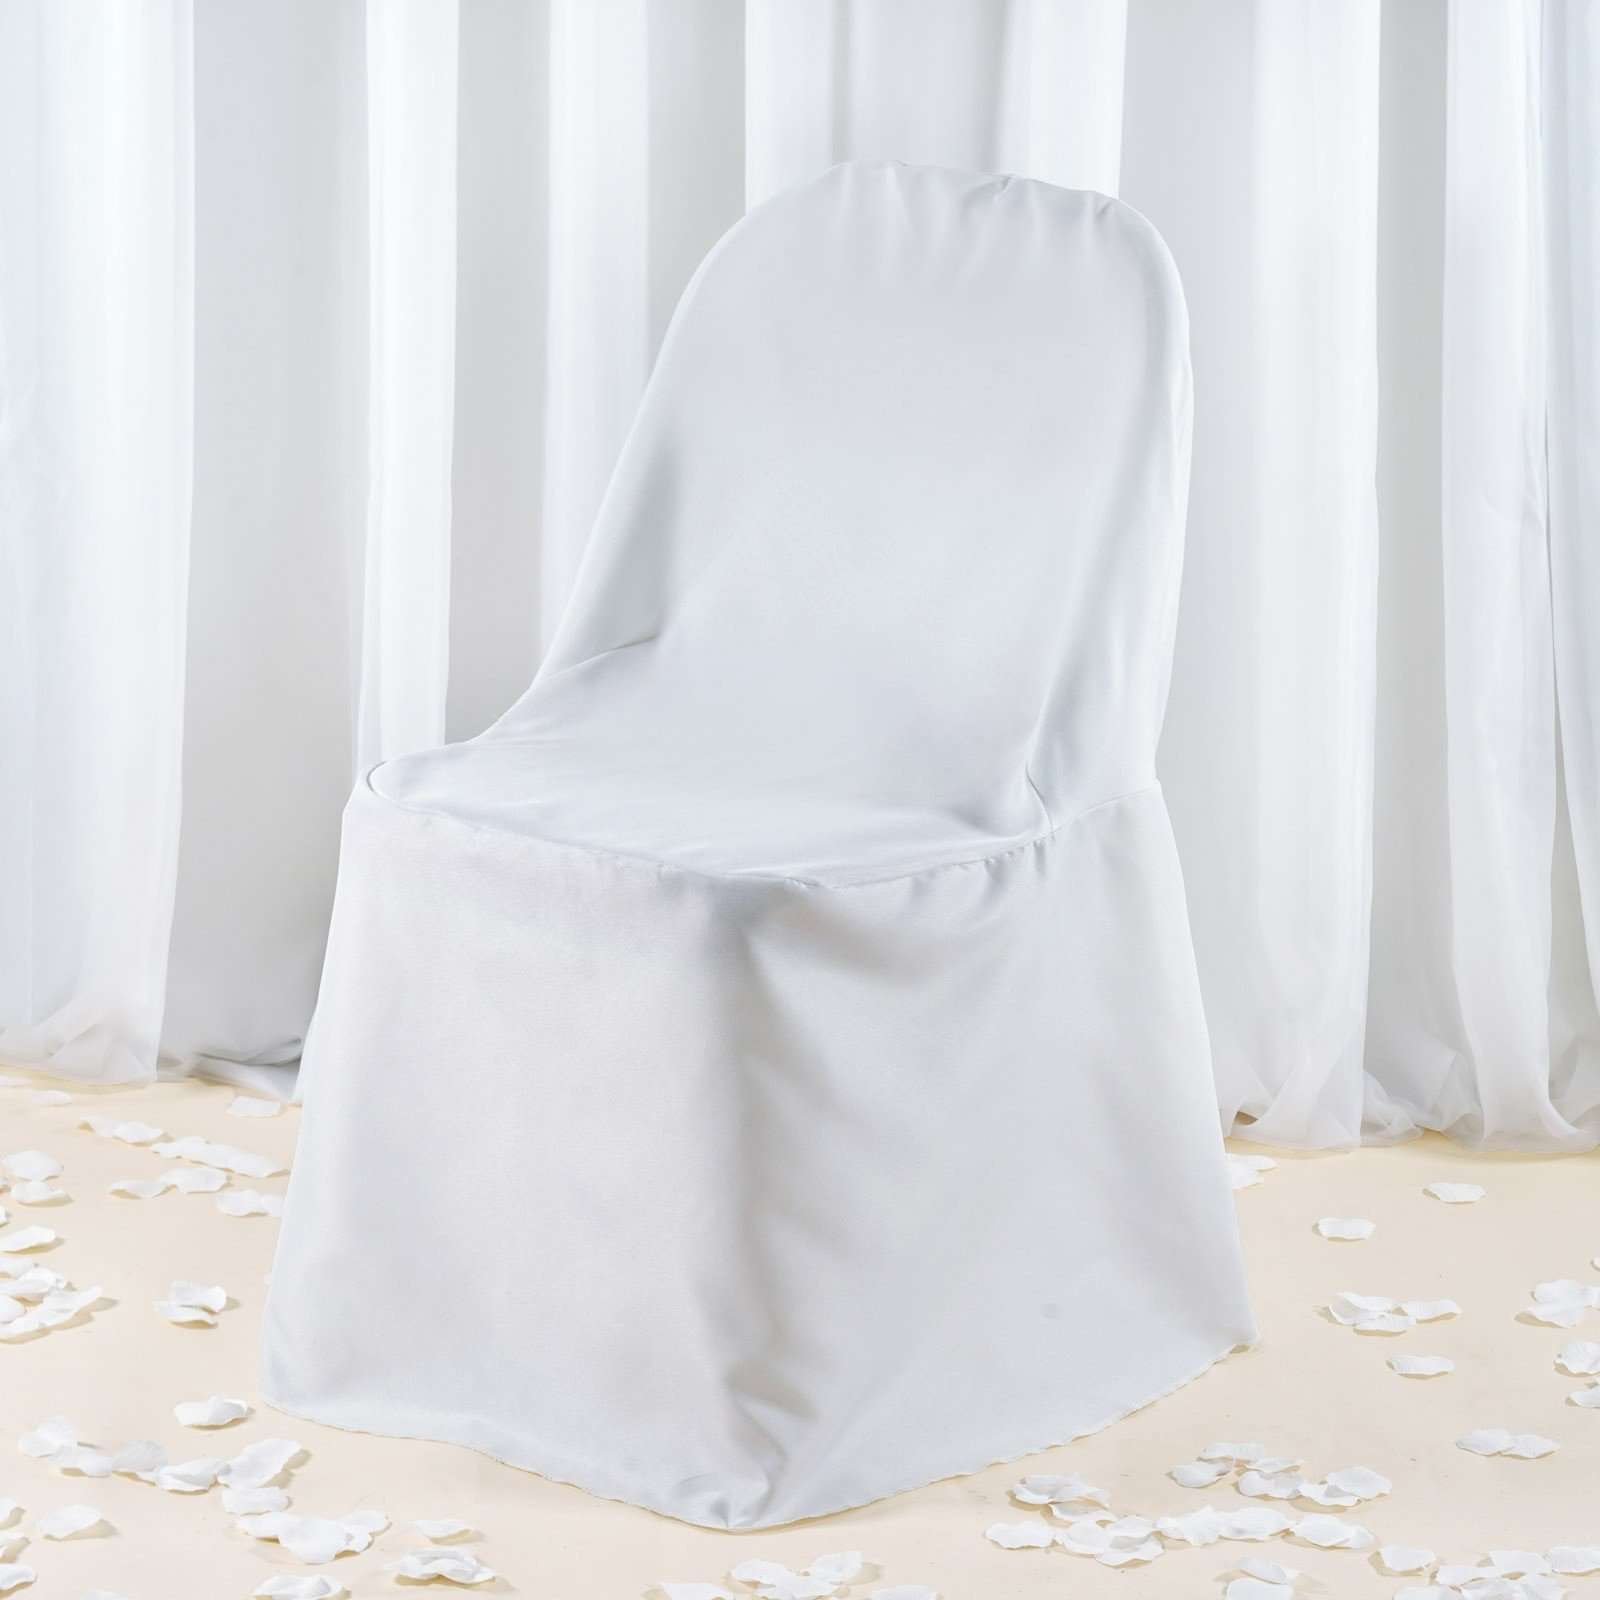 Amazing Premium White Polyester Folding Chair Covers Party Wedding Gmtry Best Dining Table And Chair Ideas Images Gmtryco